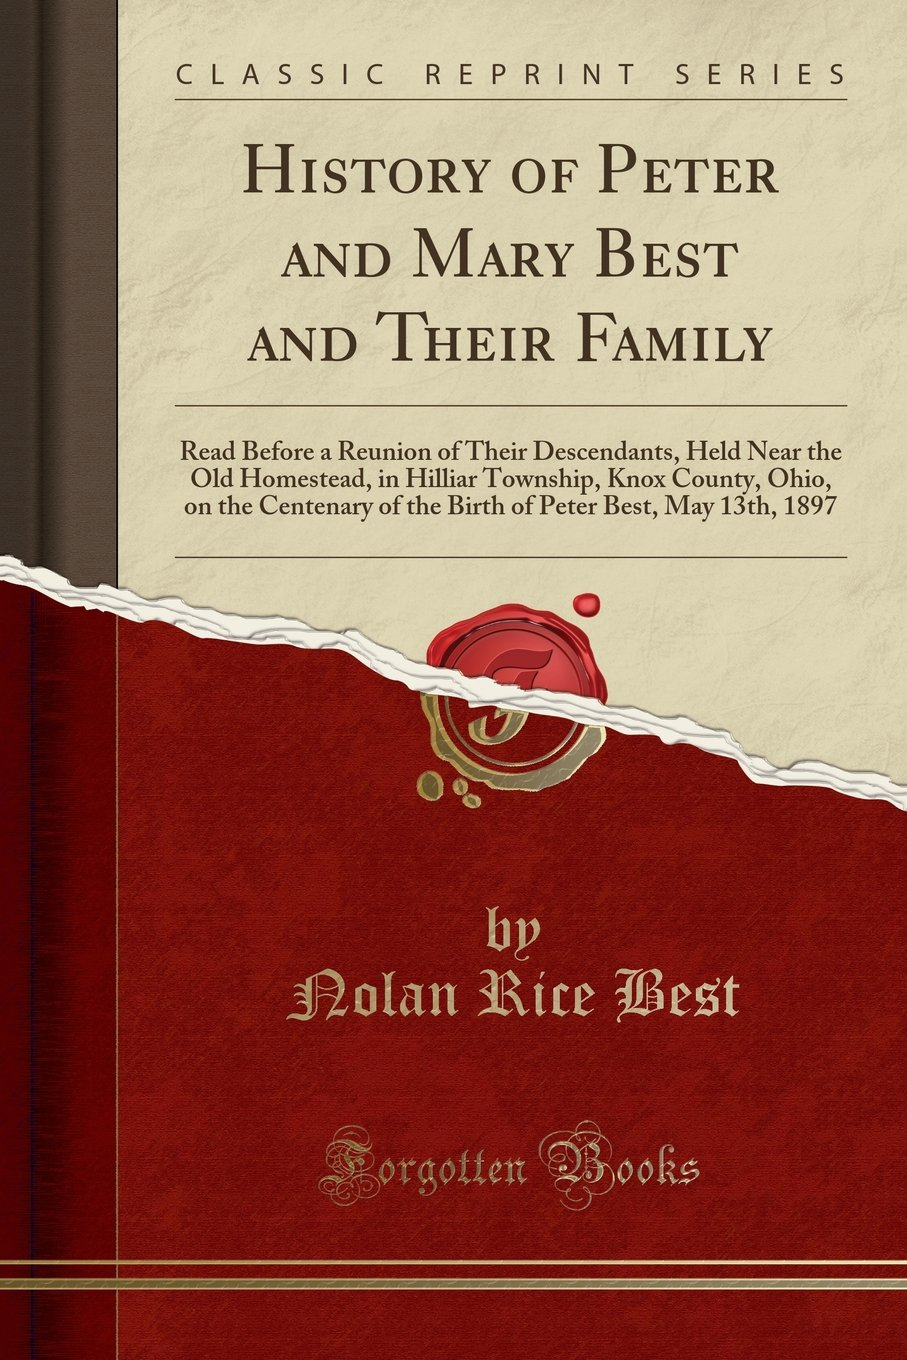 Download History of Peter and Mary Best and Their Family: Read Before a Reunion of Their Descendants, Held Near the Old Homestead, in Hilliar Township, Knox ... Peter Best, May 13th, 1897 (Classic Reprint) PDF